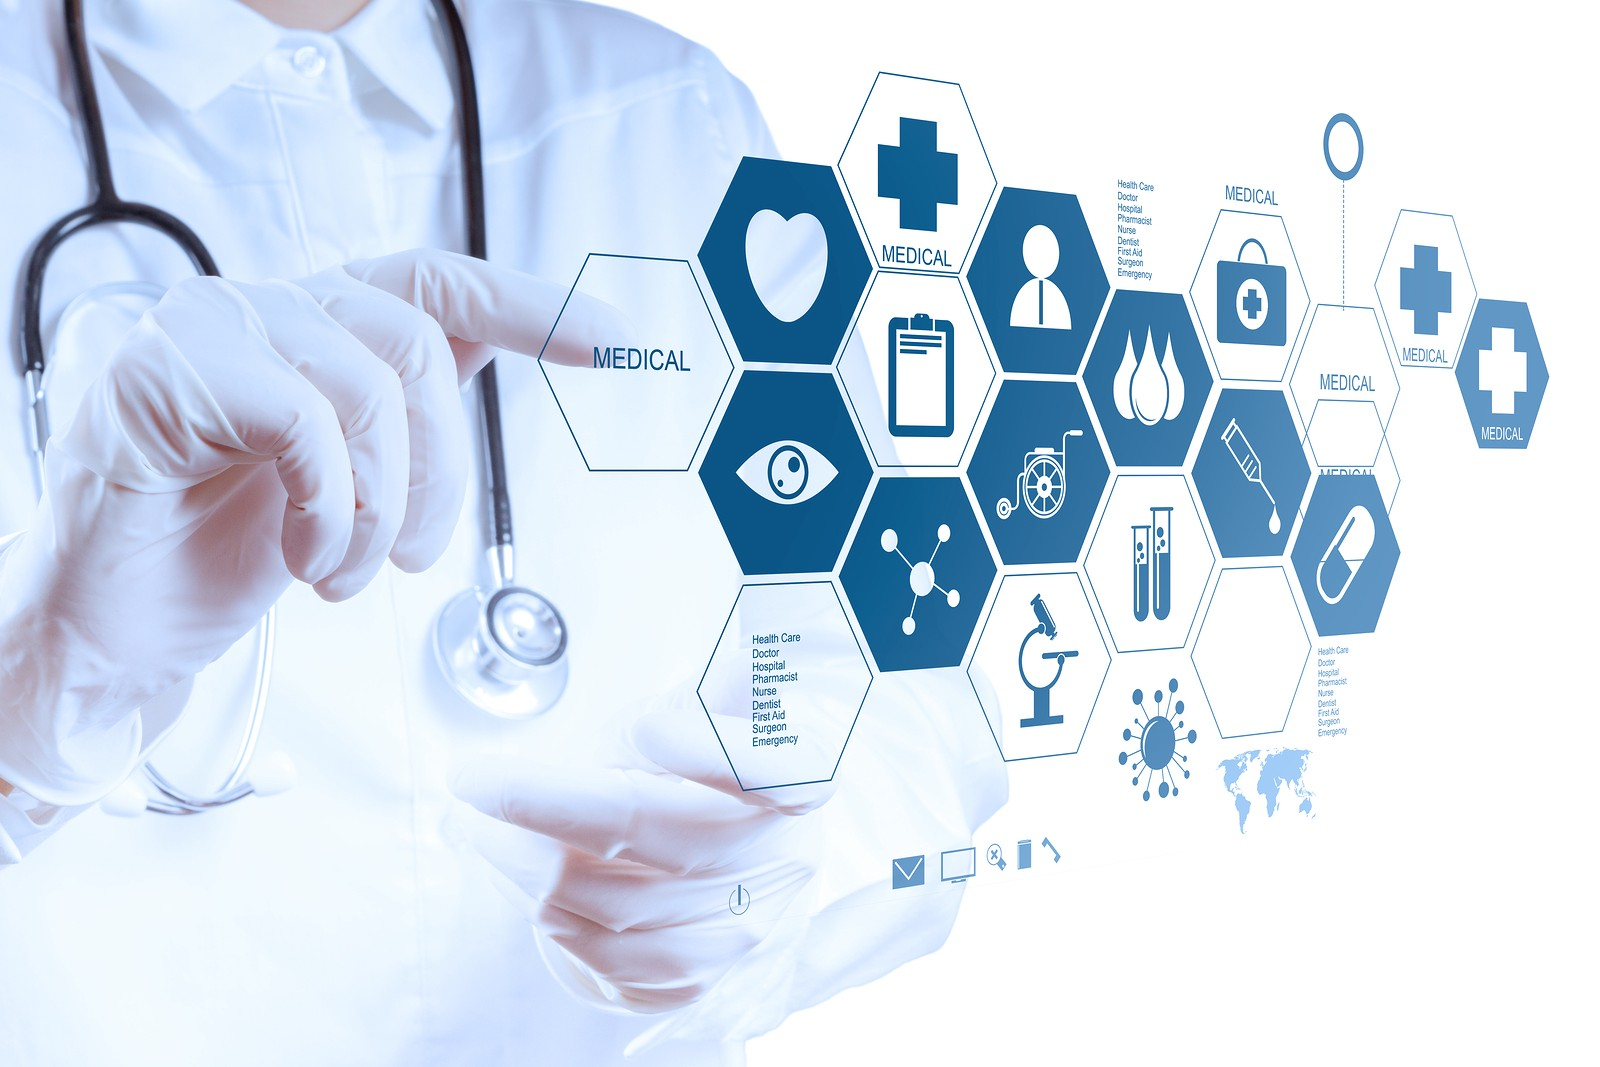 Top 6 genuine applications for medicines and health care services